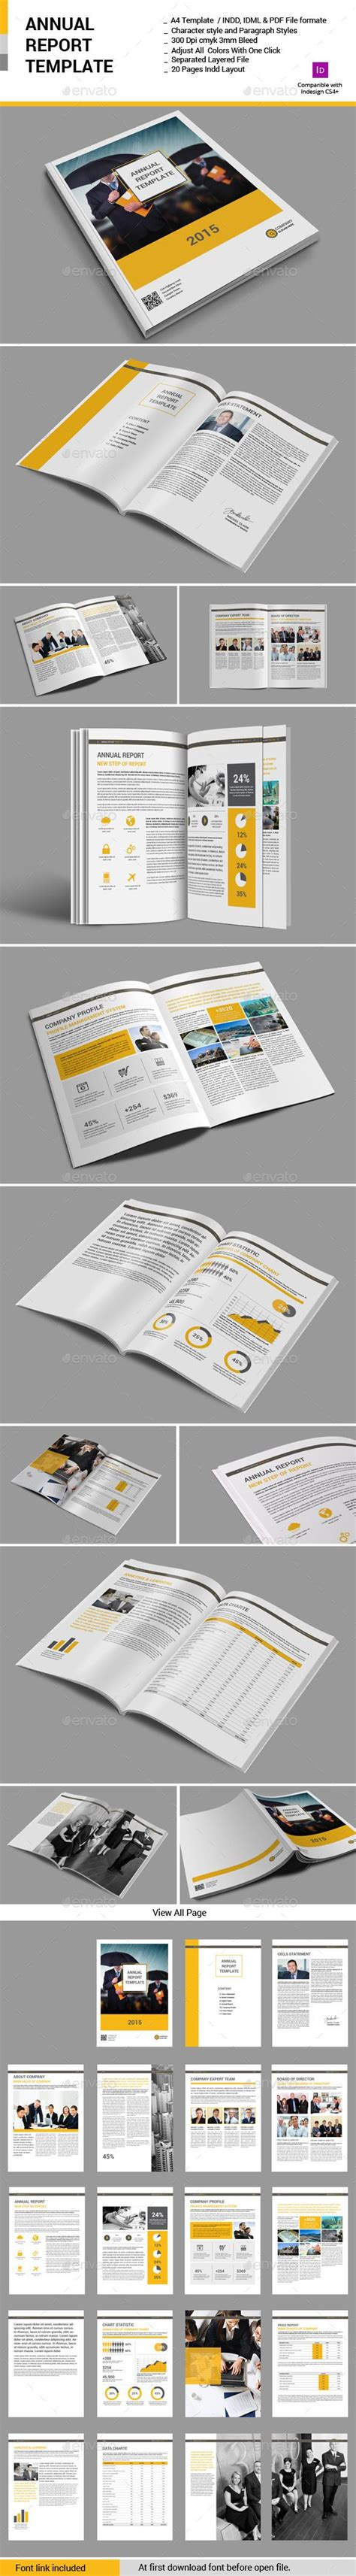 layout koran indesign annual report template brochures annual reports and